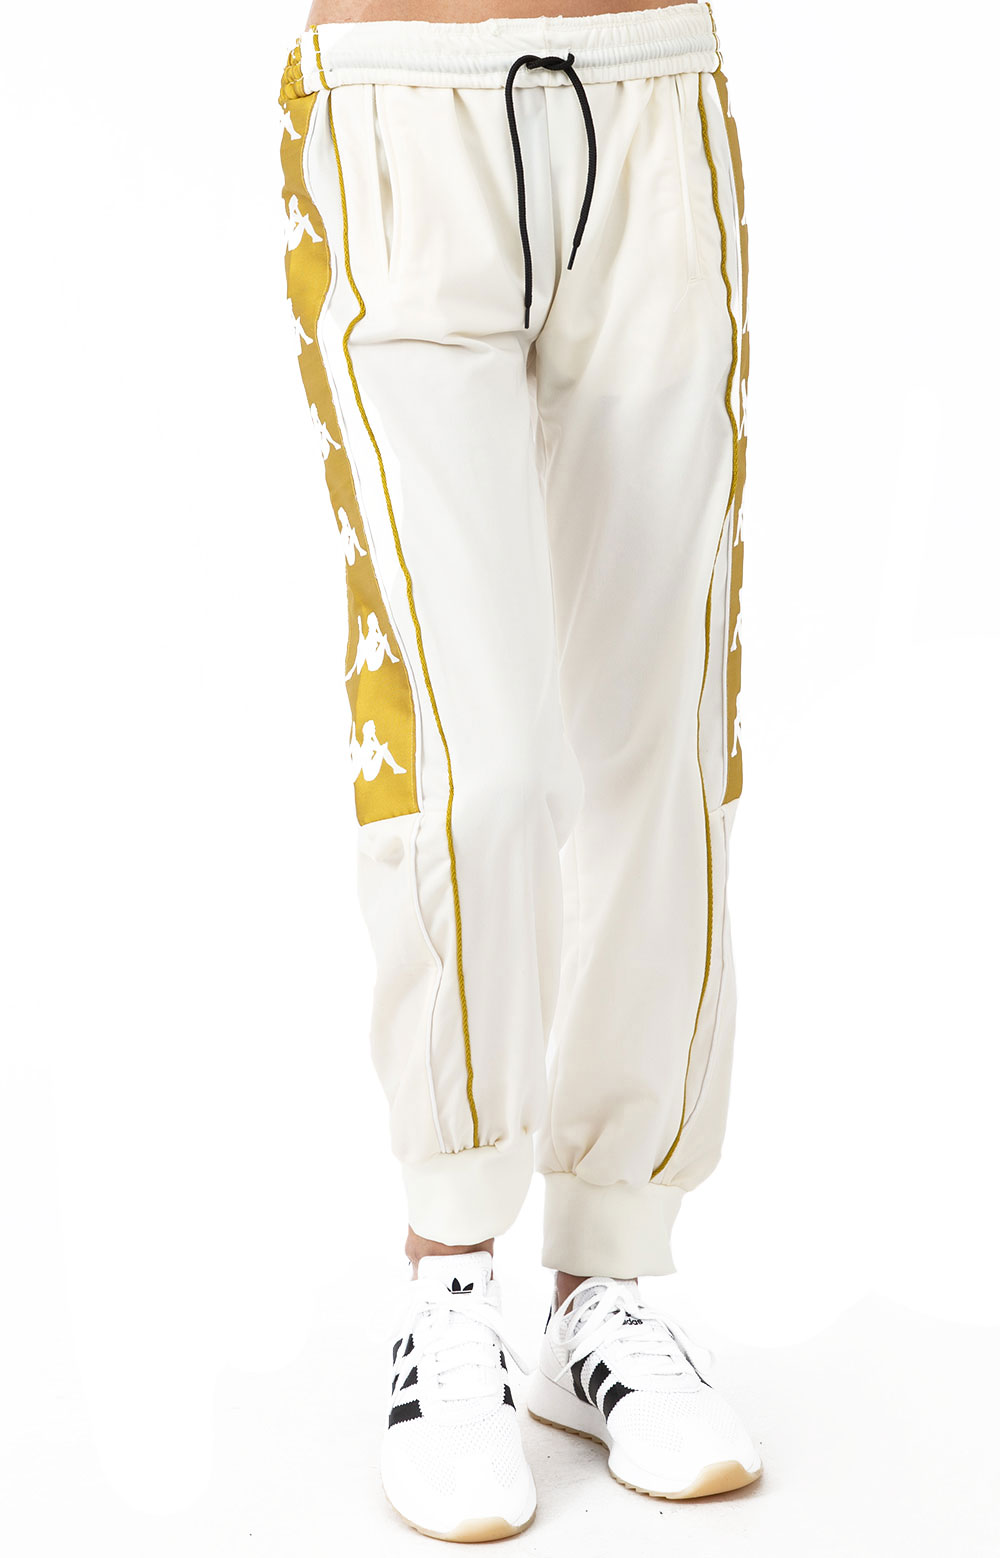 222 Banda 10 Arsis Track Pants - White/Yellow